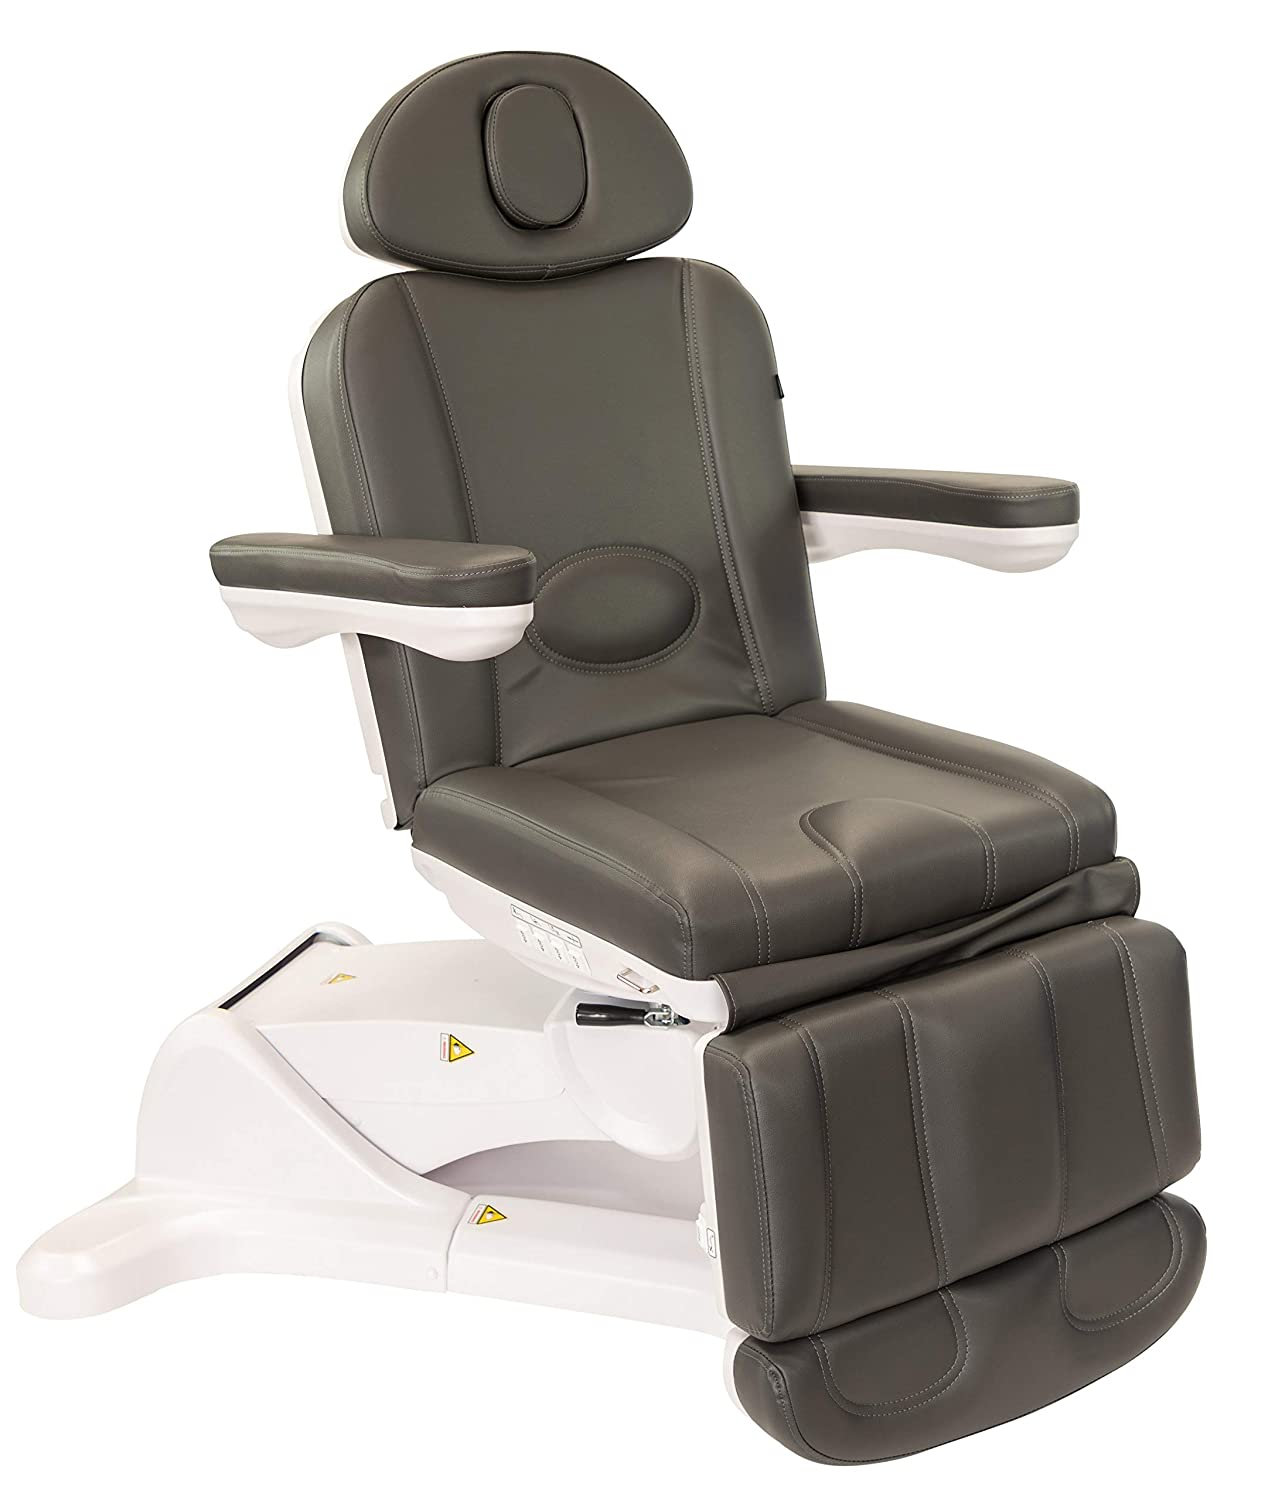 Medical Our shop most popular Spa Facial Bed Exam Dermatology Japan's largest assortment Chair Procedure Ro and w